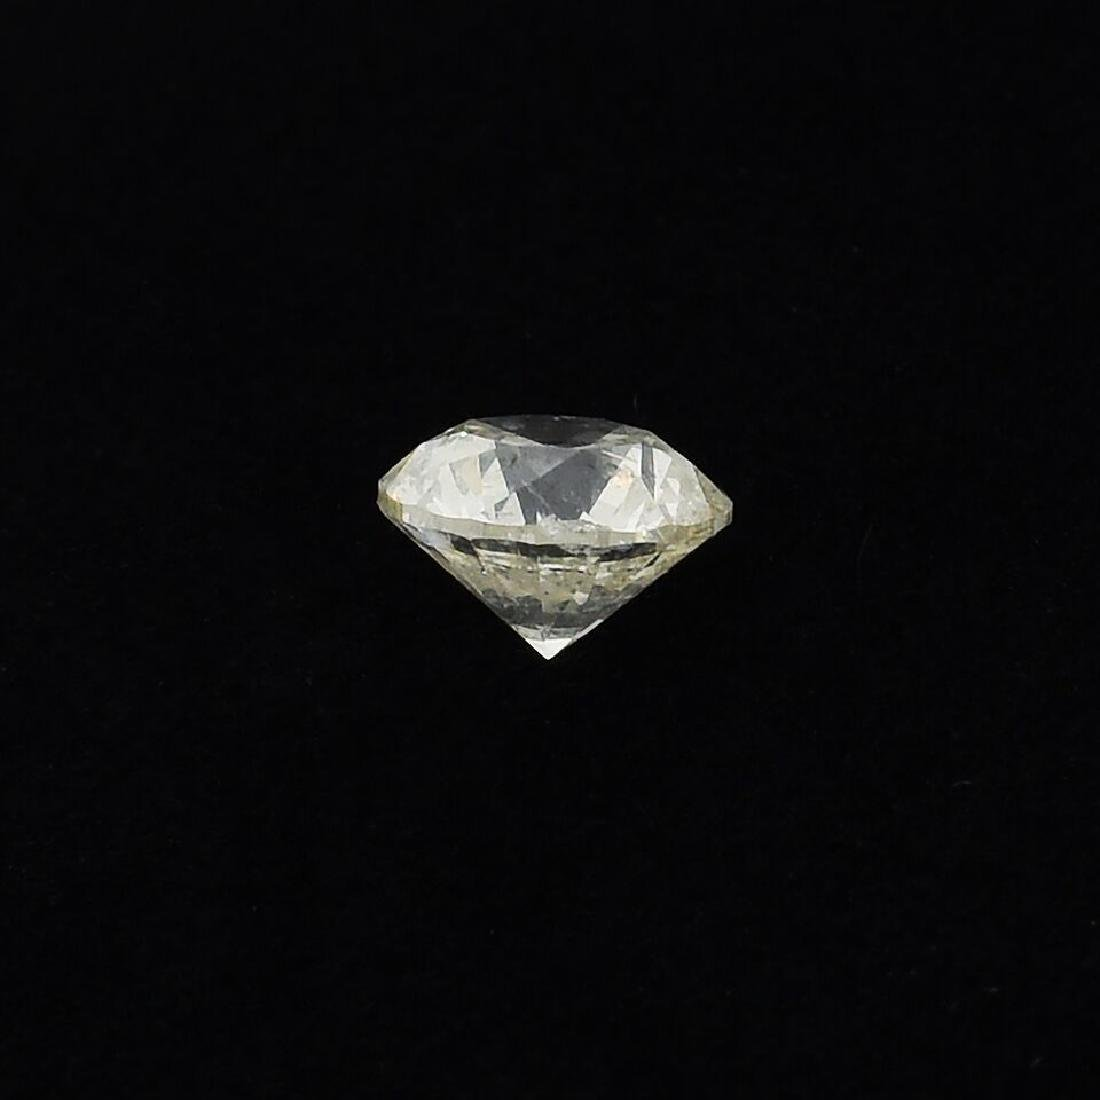 1.05ct SI3 Clarity Diamond Loose Stone (EGL Certified) - 2